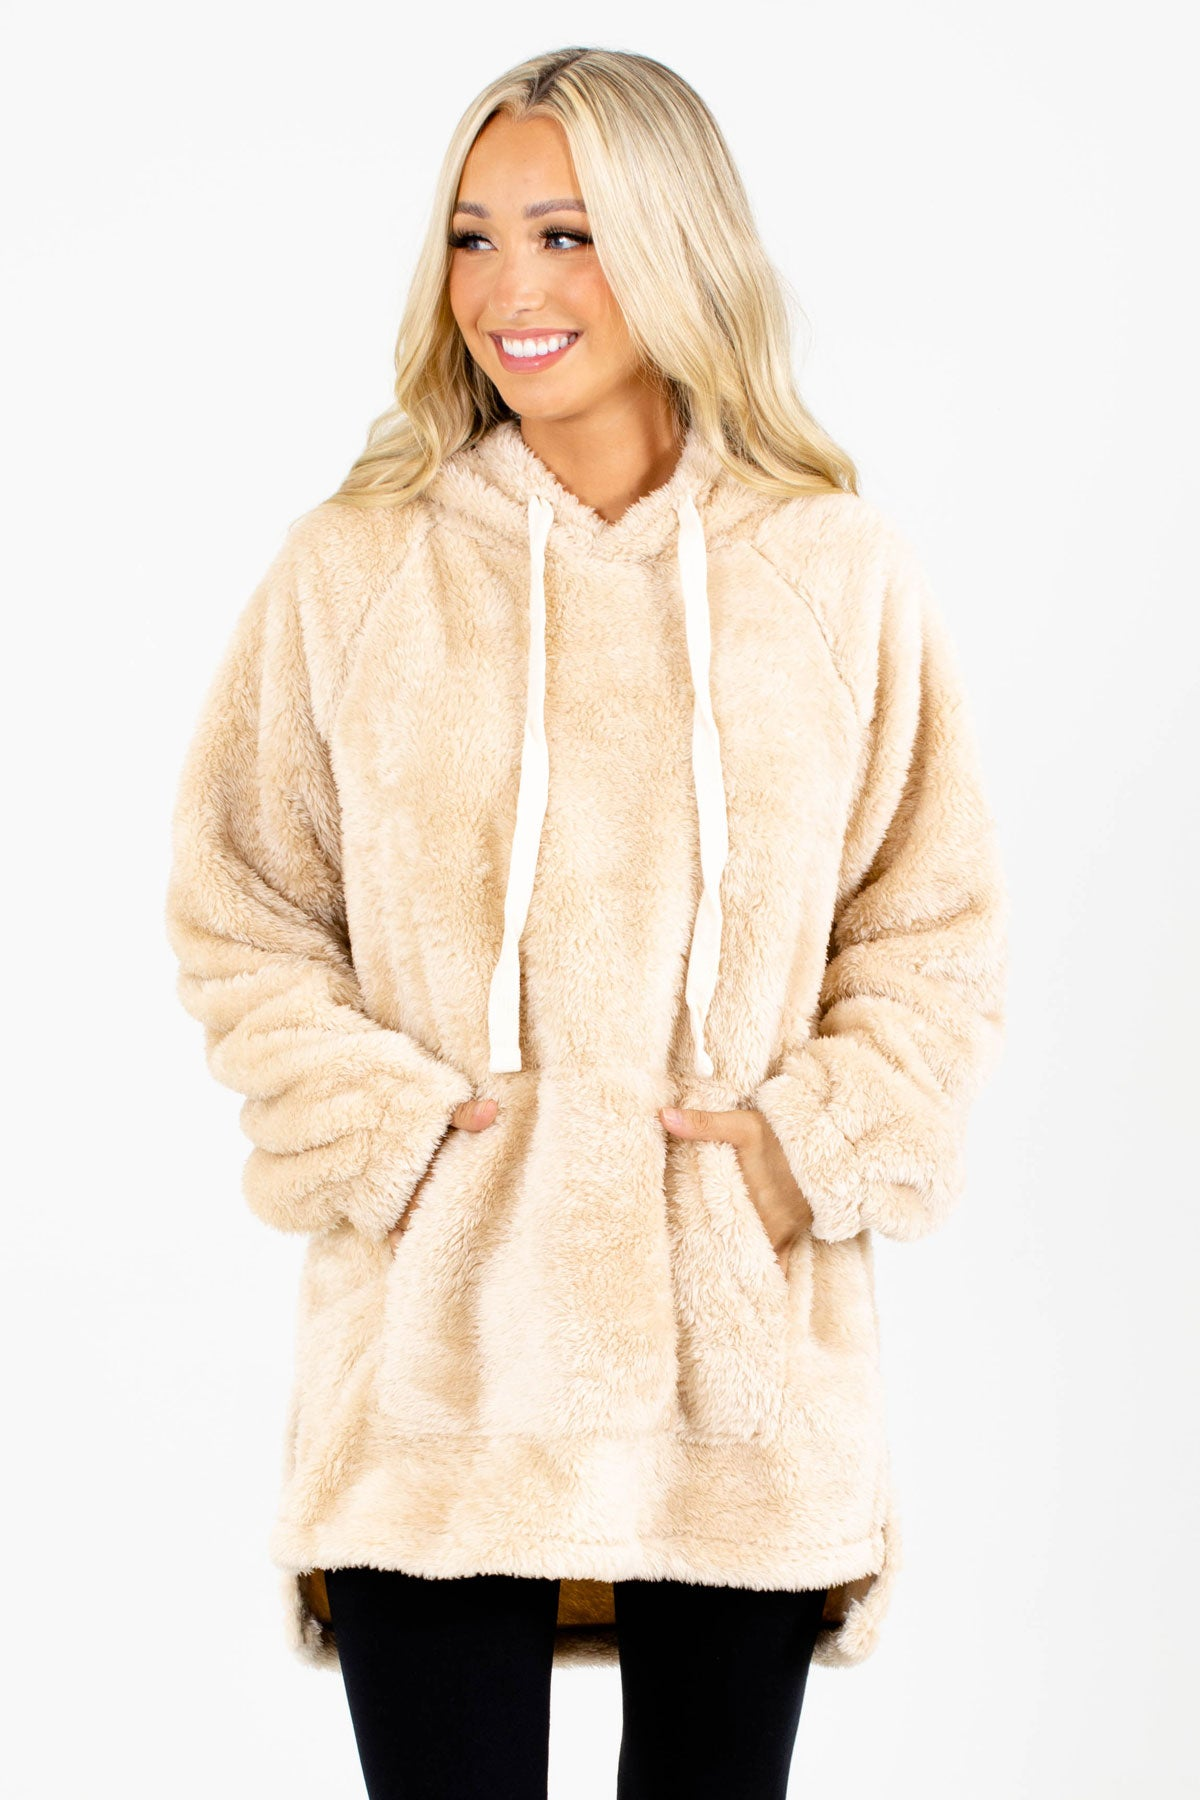 Beige Fuzzy Boutique Hoodies for Women